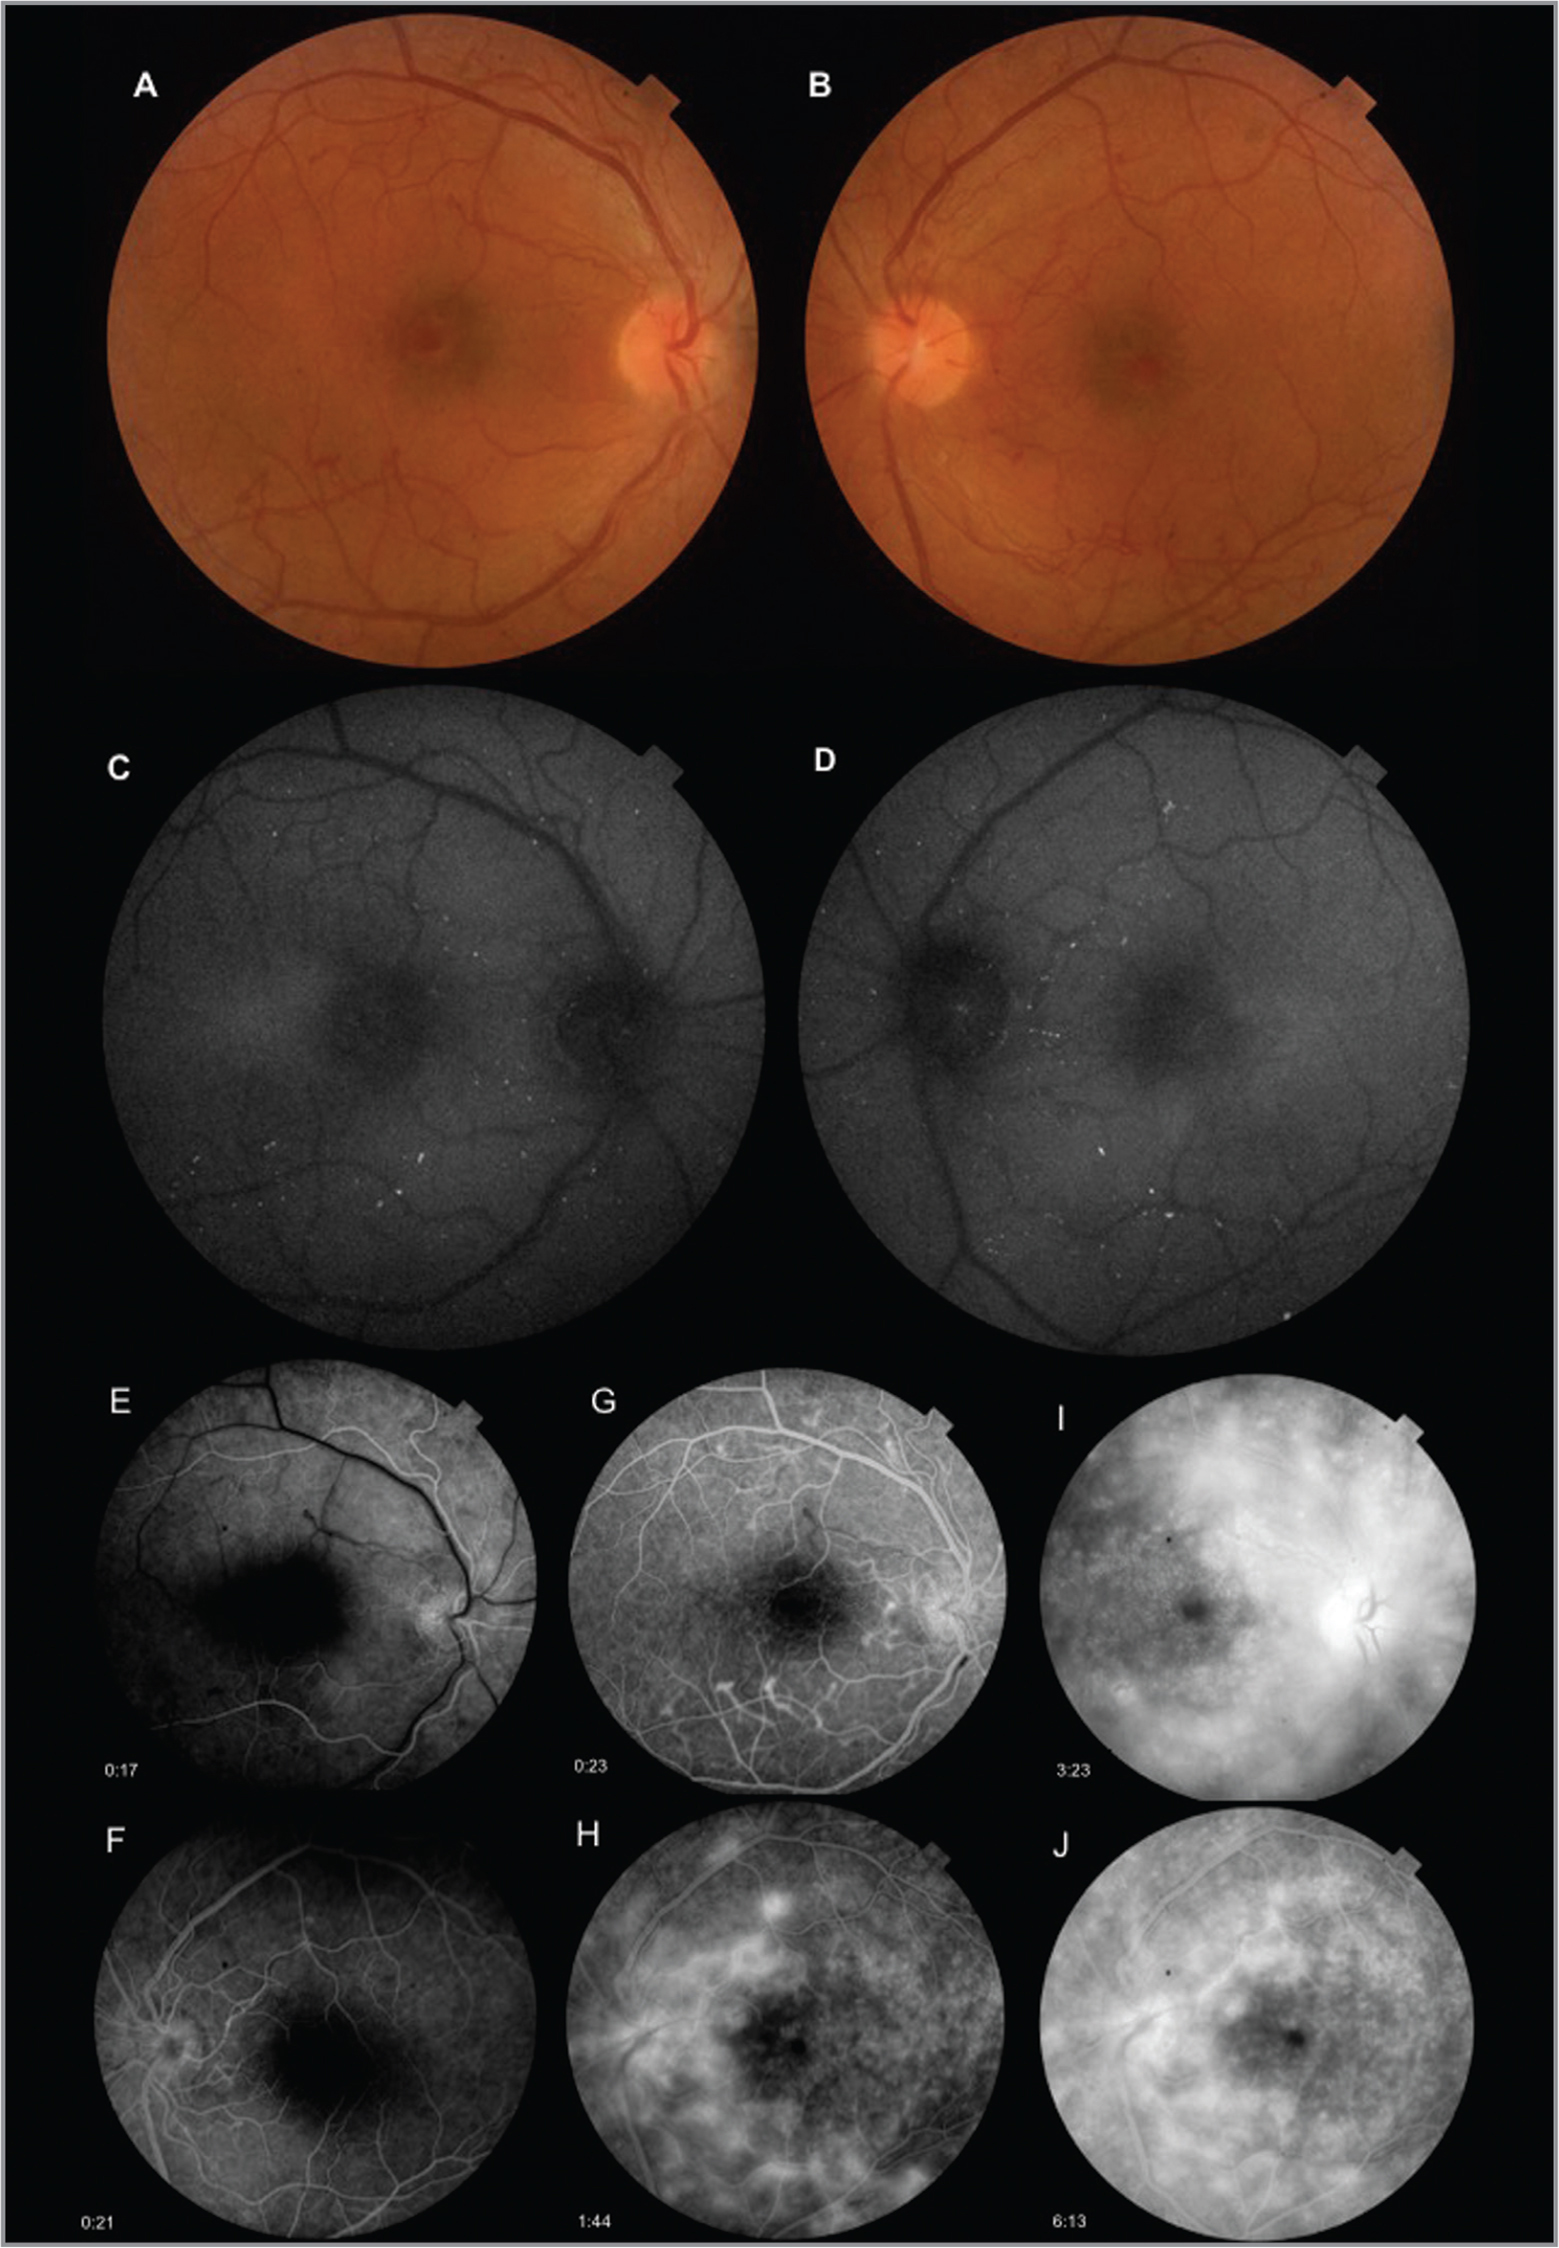 Fundus photographs demonstrating abnormal loop-shaped, tortuous vessels radiating from the optic disc (A, B). Fundus autofluorescence imaging revealing a perimacular hyperautofluorescent ring and hyperautofluorescent dots (C, D). Fluorescein angiography showing arterial phase in the right eye (OD) (E), early venous phase in the left eye (OS) (F), venous phase showing filling of the loops OD (G) and OS (H), late phase revealing filling defect in some loops, and diffuse leakage OD (I) and OS (J).